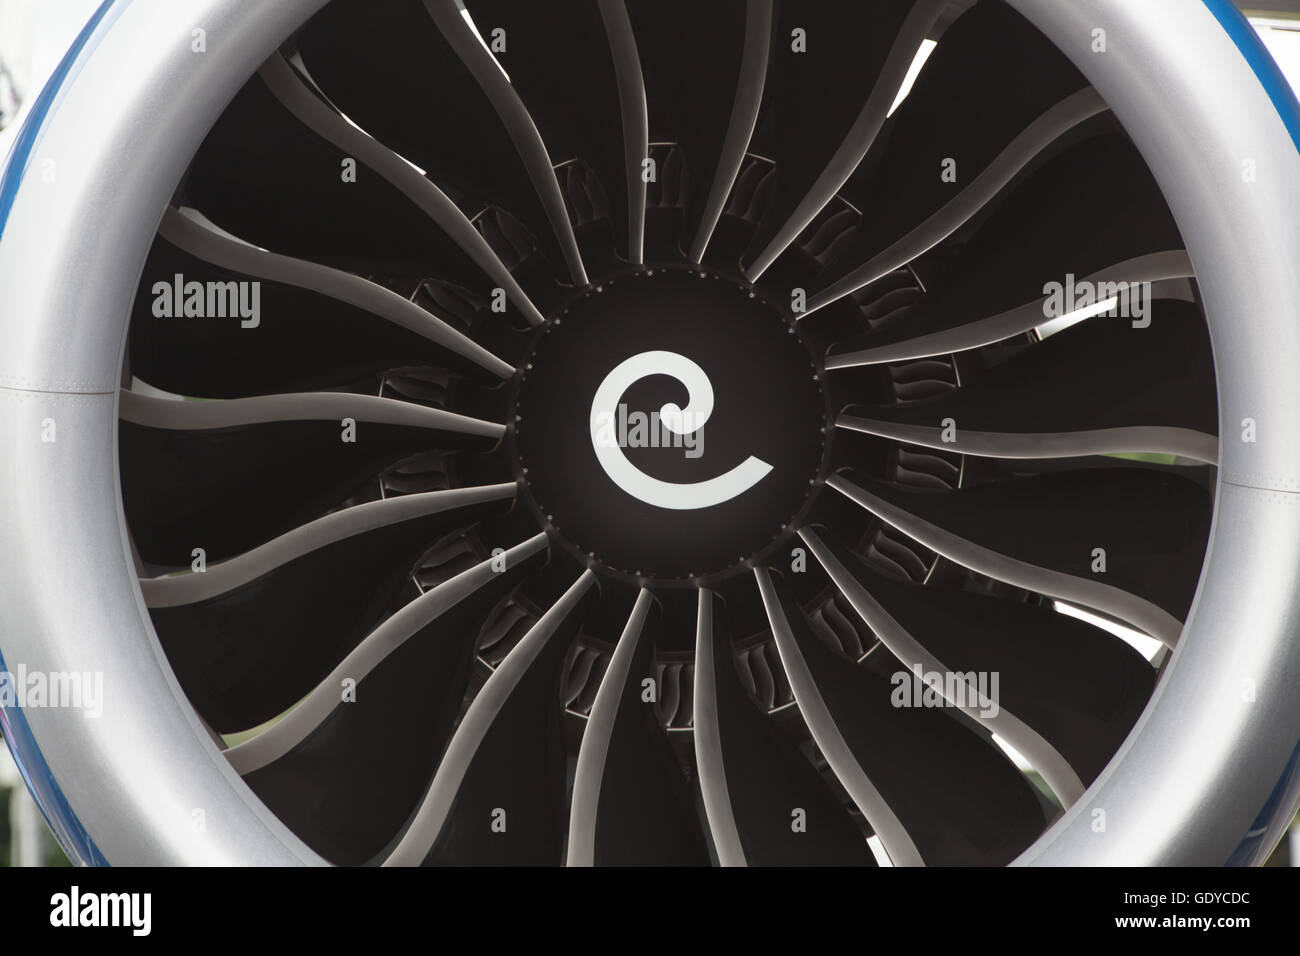 Rolls Royce jet engine - Stock Image